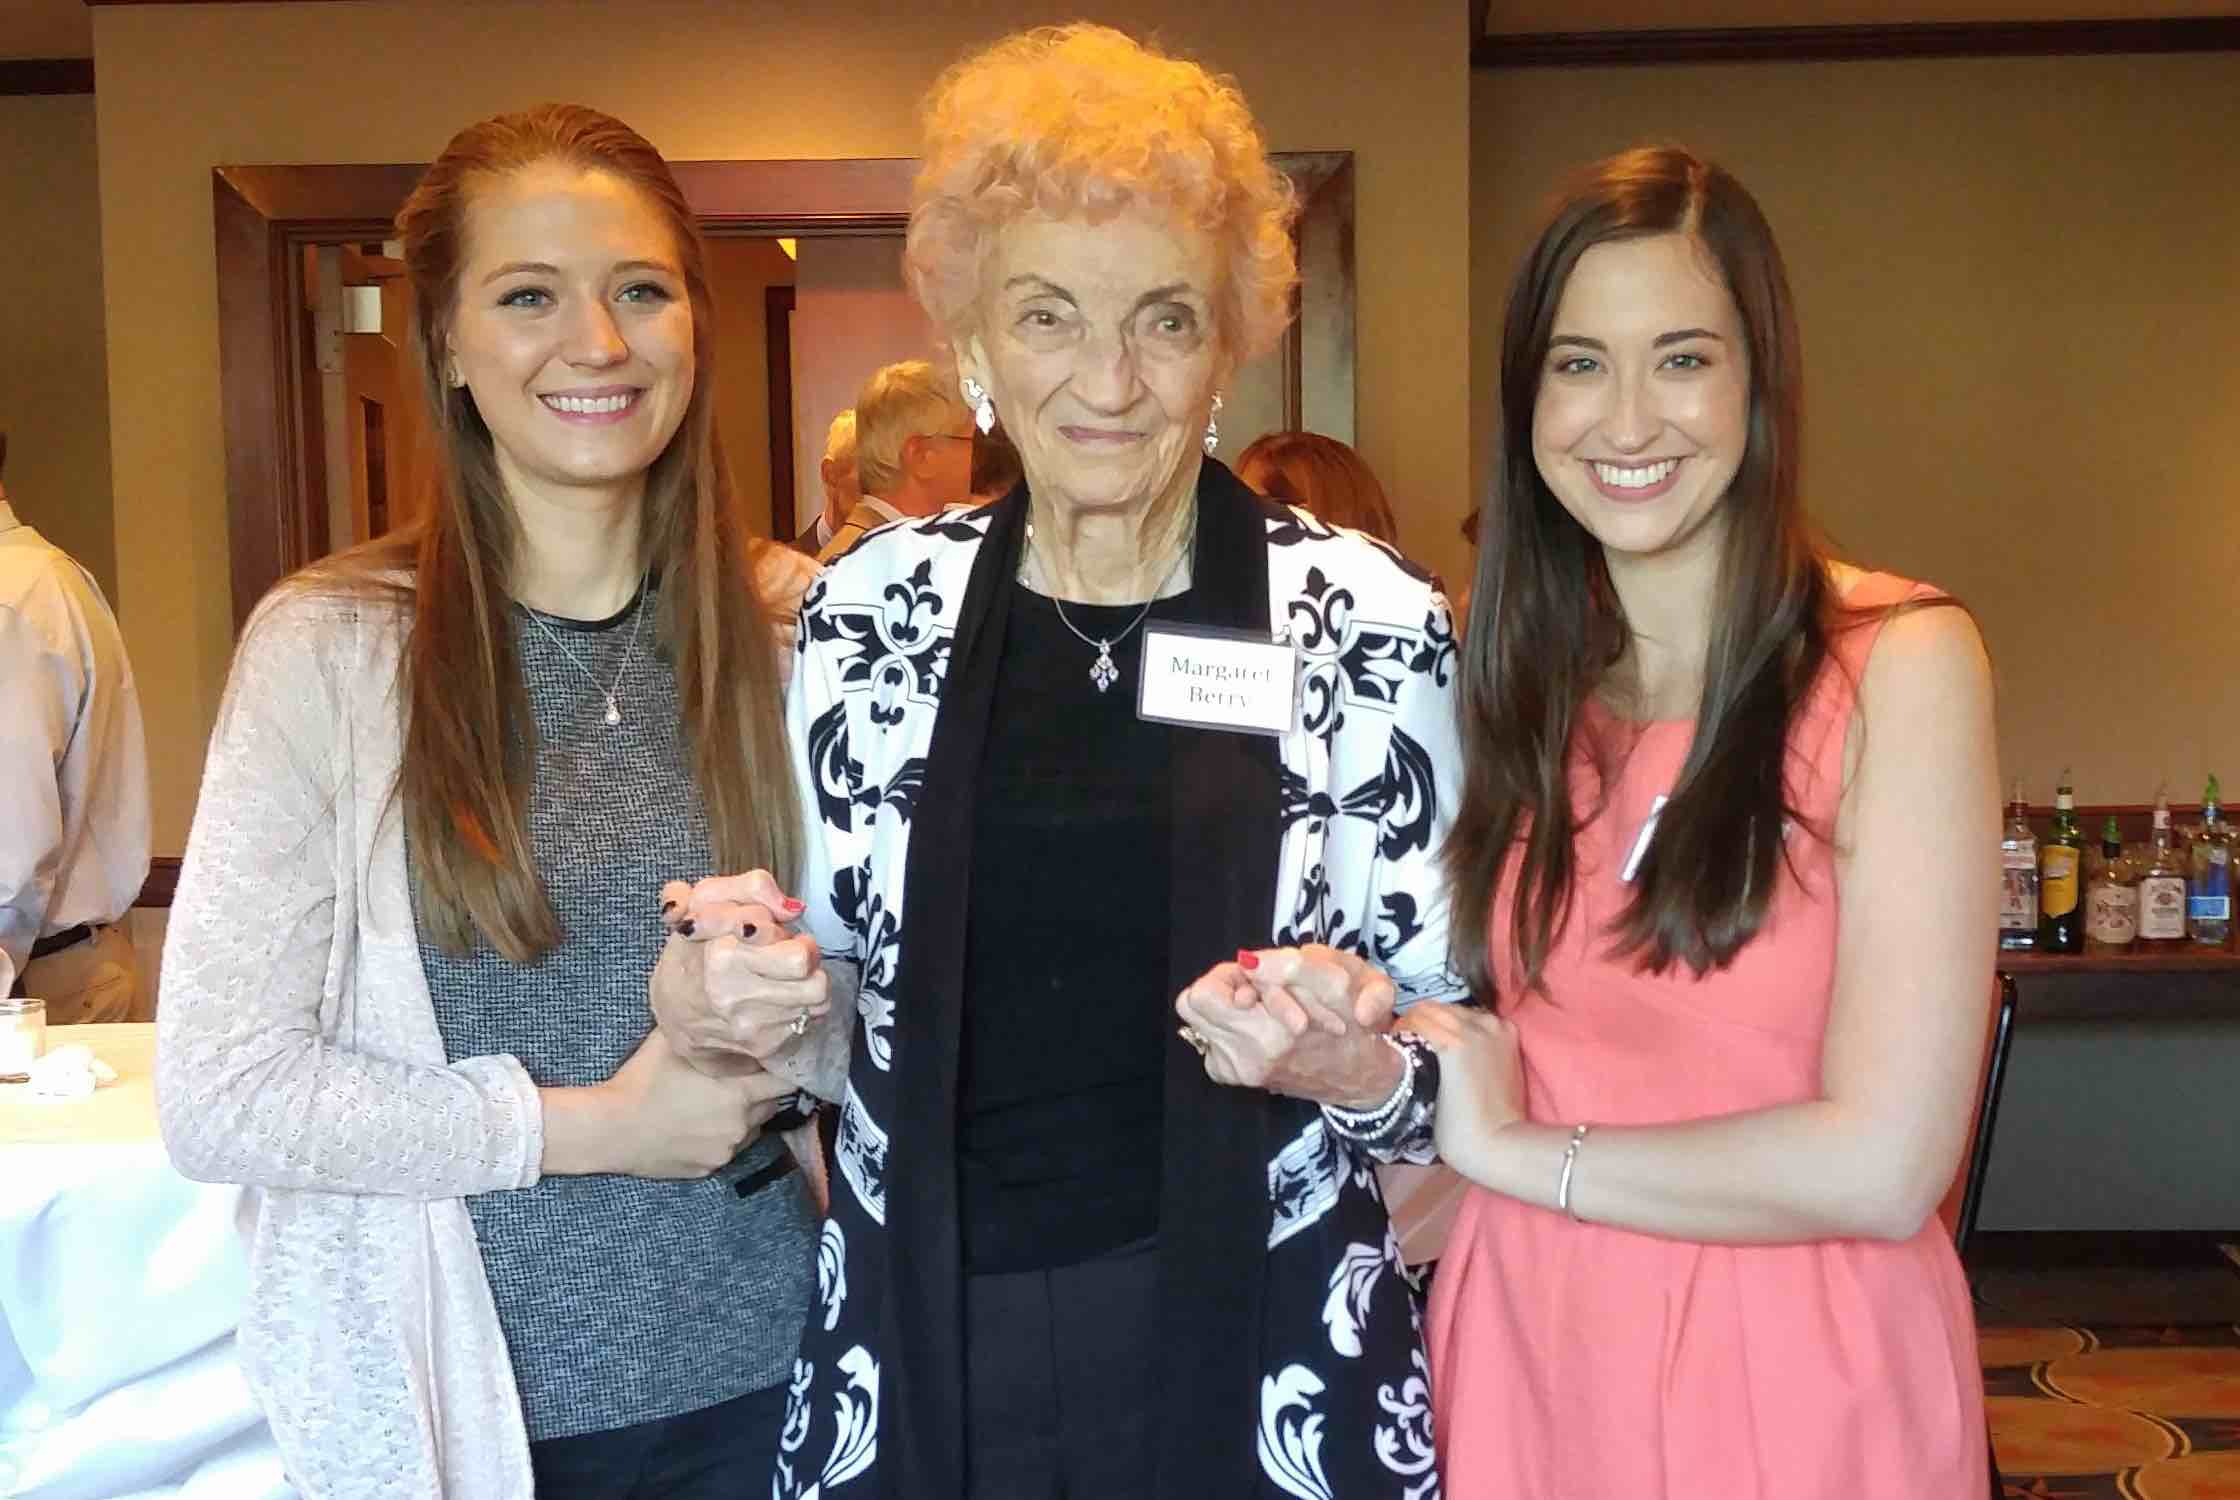 Pictured, left to right: Kylie McDaniel, Margaret Berry, & Tori Pell